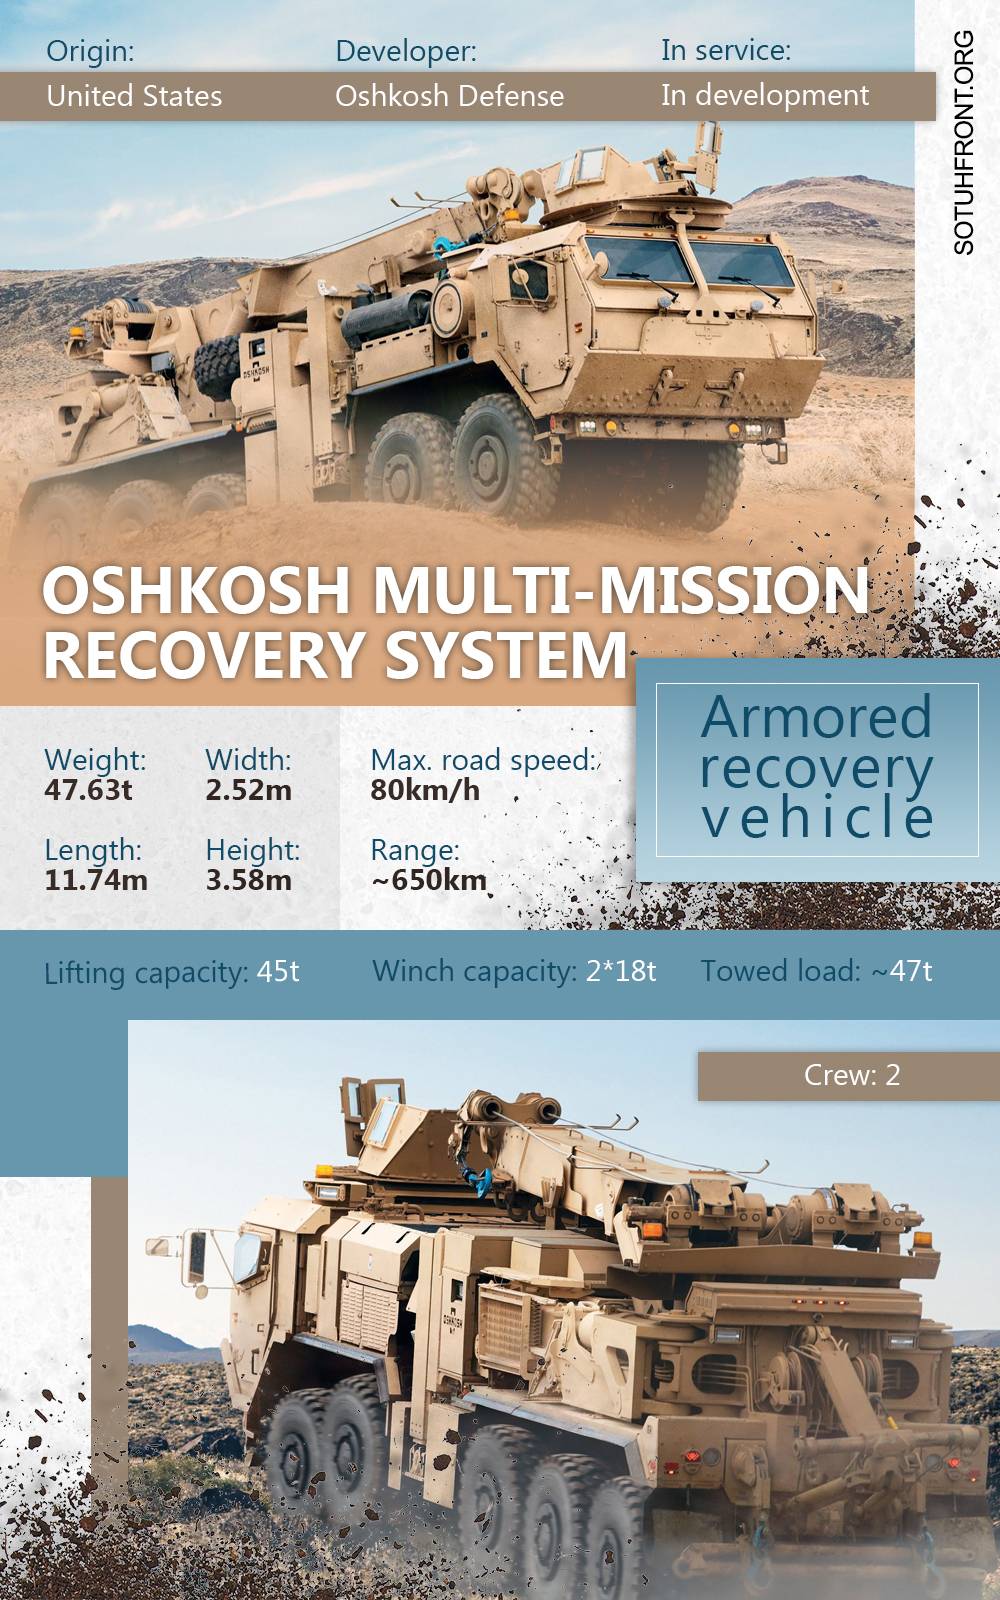 Oshkosh MMRS Heavy Recovery Vehicle (Infographics)